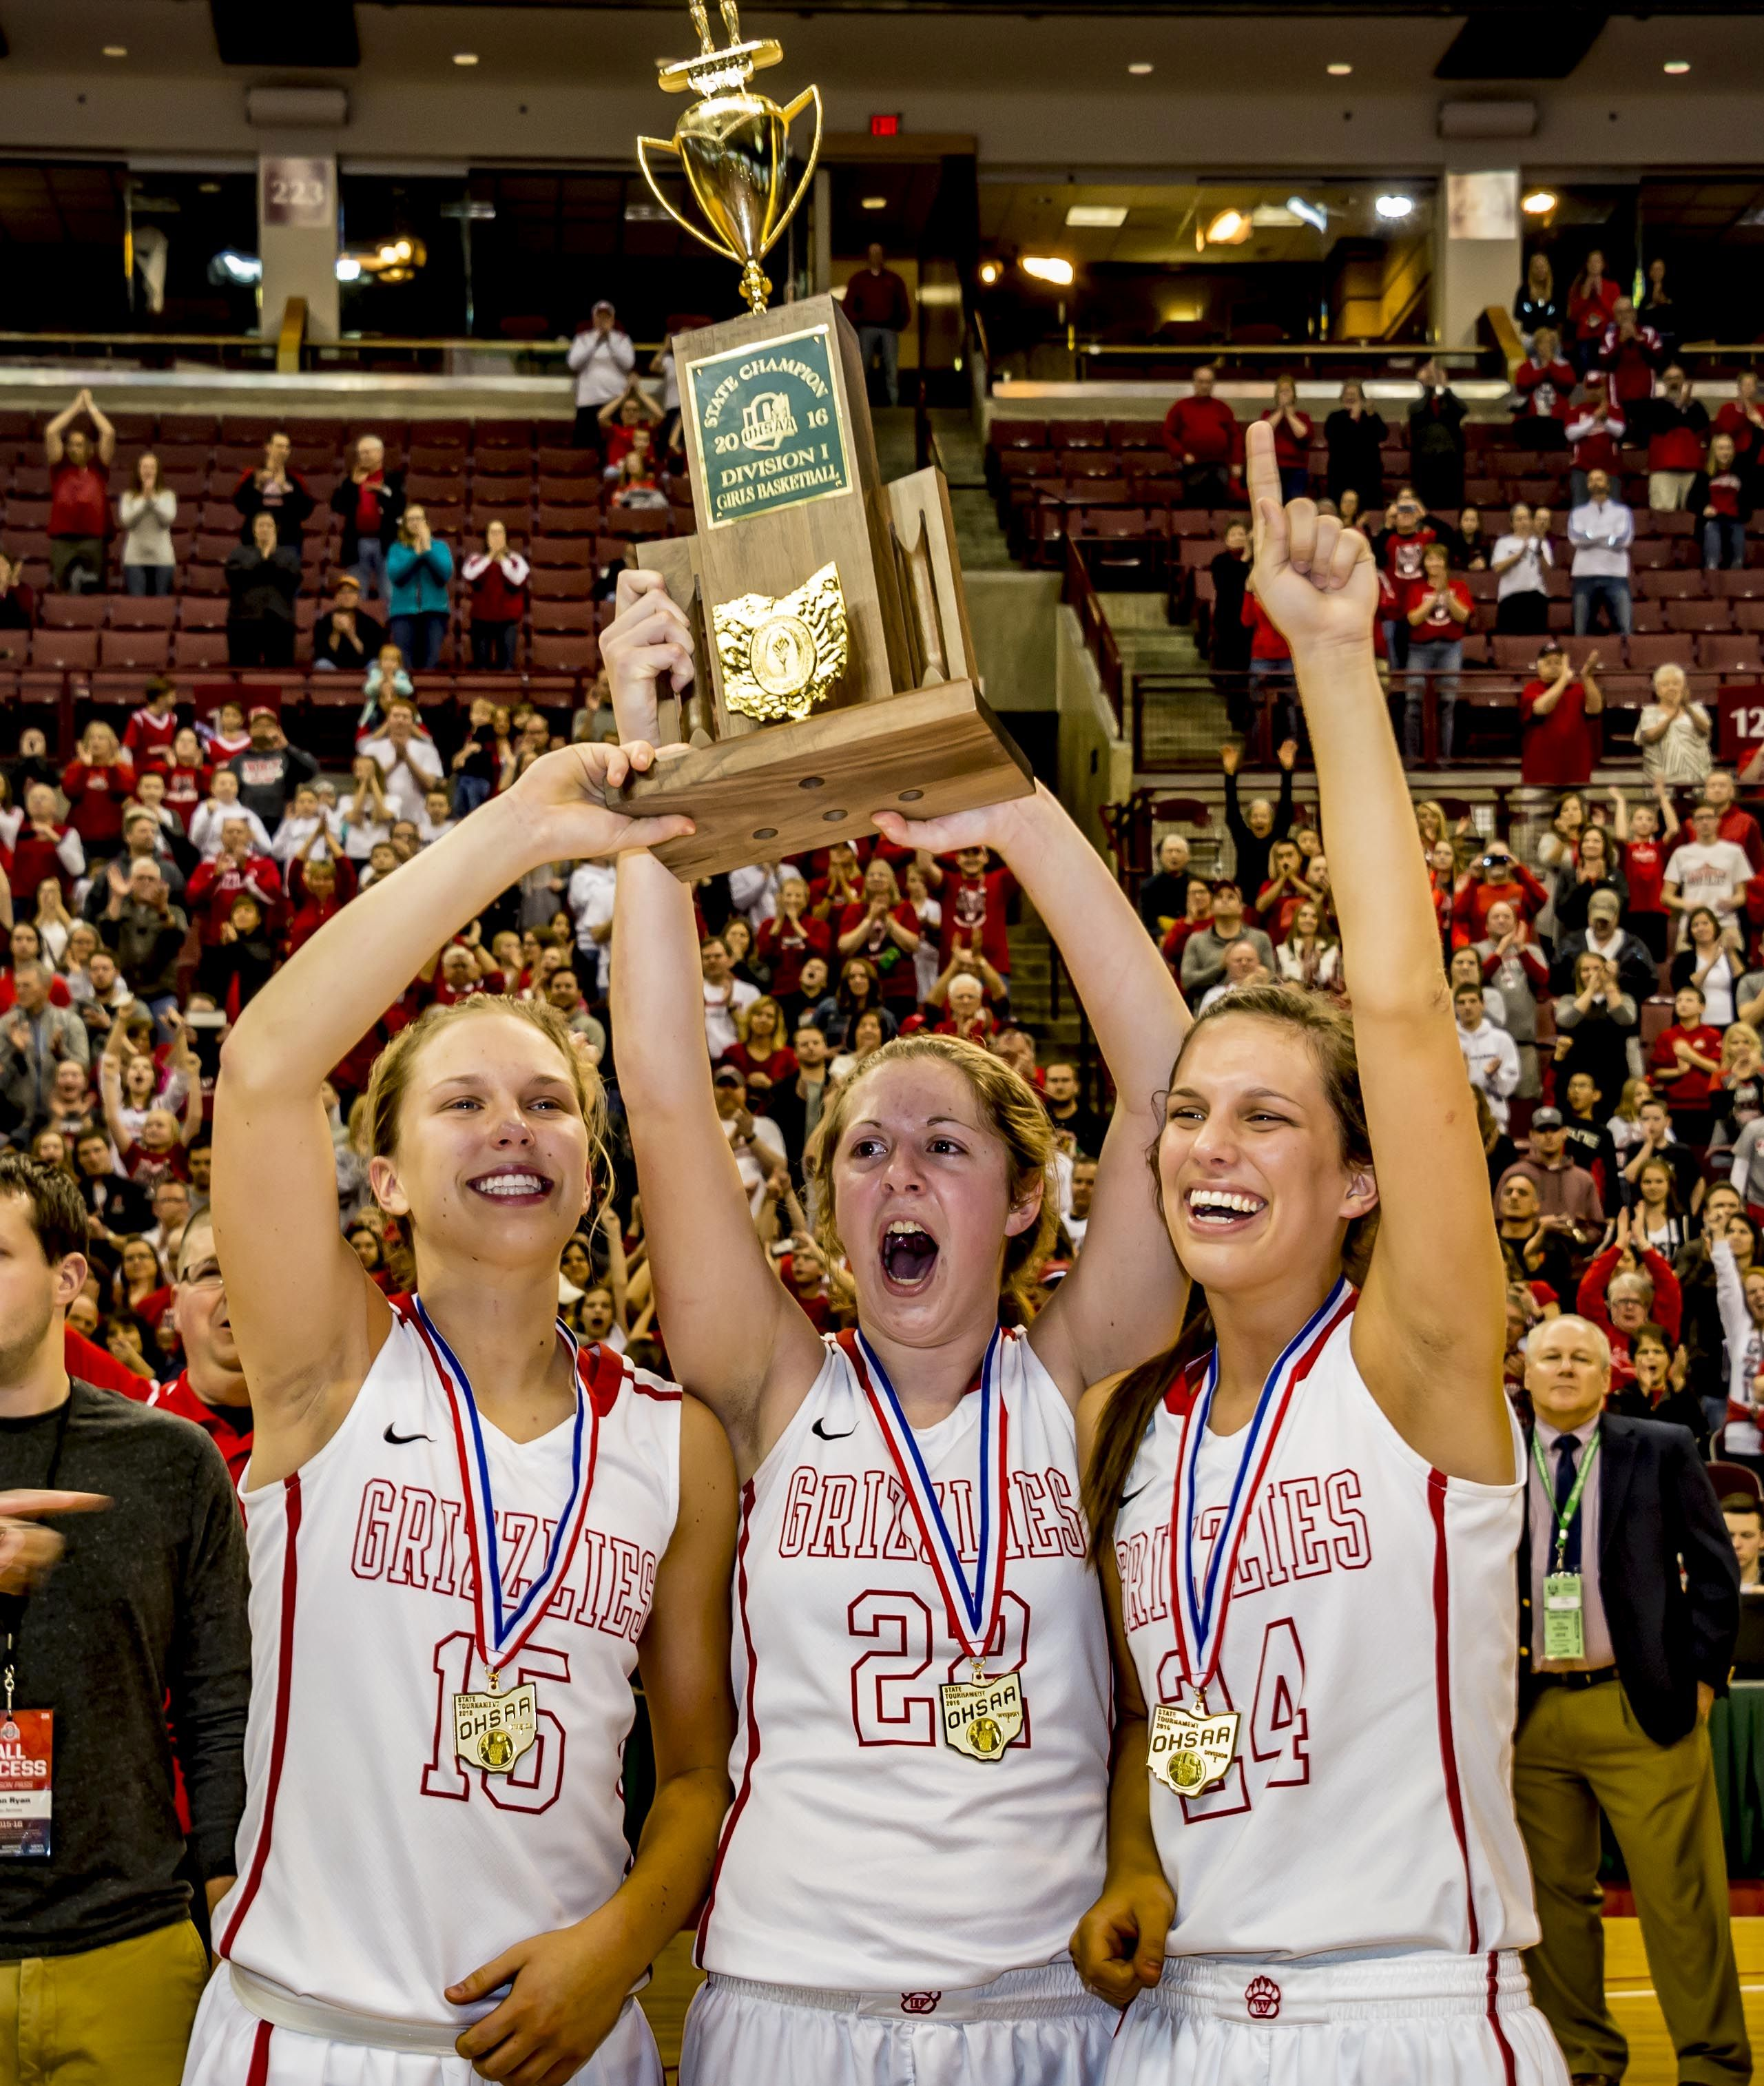 Wadsworth Lady Grizzlies win state division 1 basketball championship